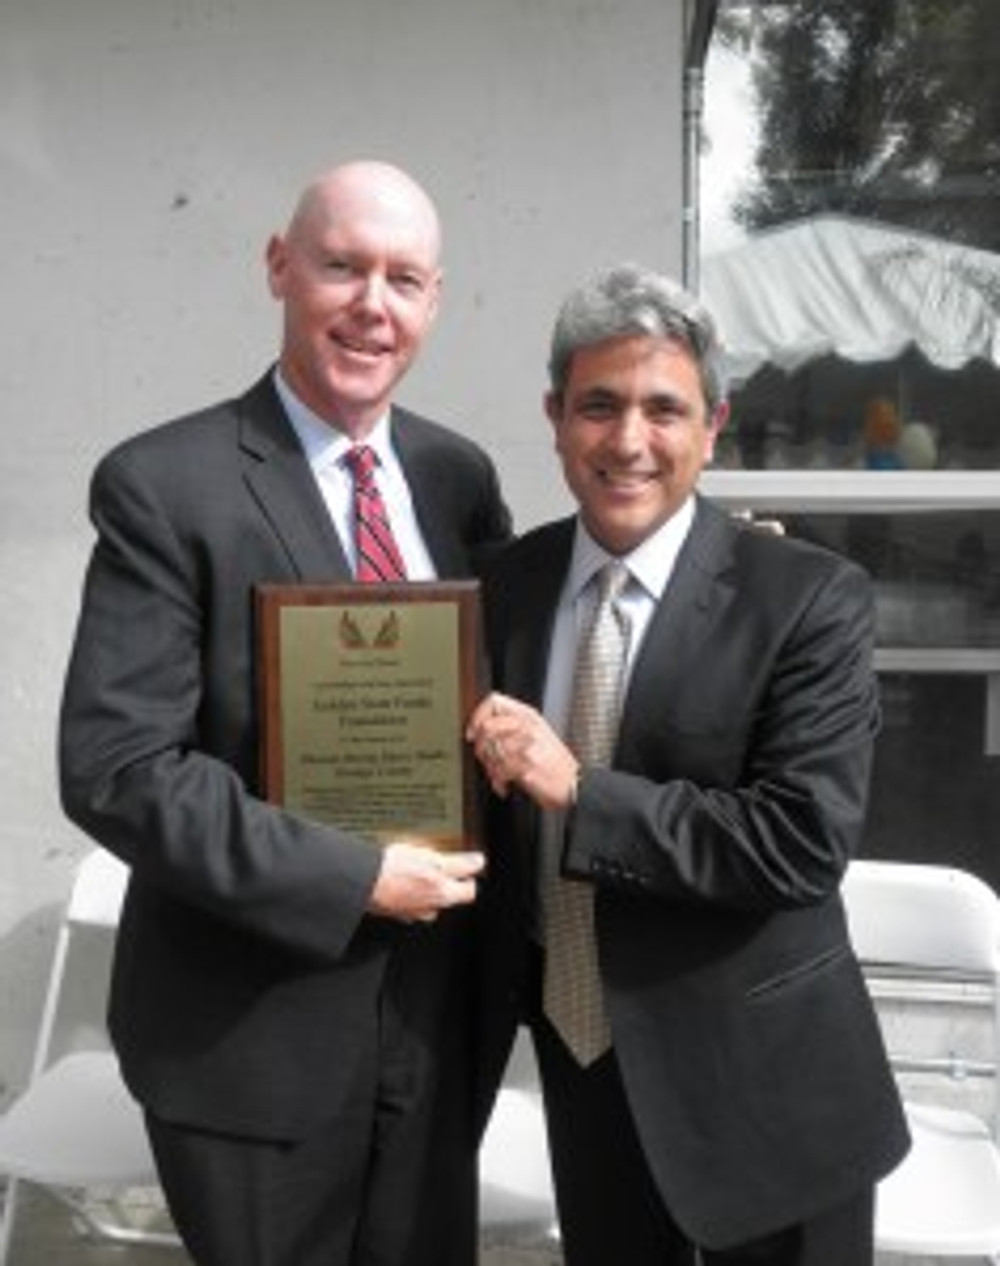 (from left to right): GSF's Bill Sanderson, Senior Vice President and Chief Financial Officer, and Pouria Abbassi, Senior Vice President and California Regional Director of Phoenix House at the dedication of the Phoenix Rising Music Studio in Santa Ana on November 4, 2013.